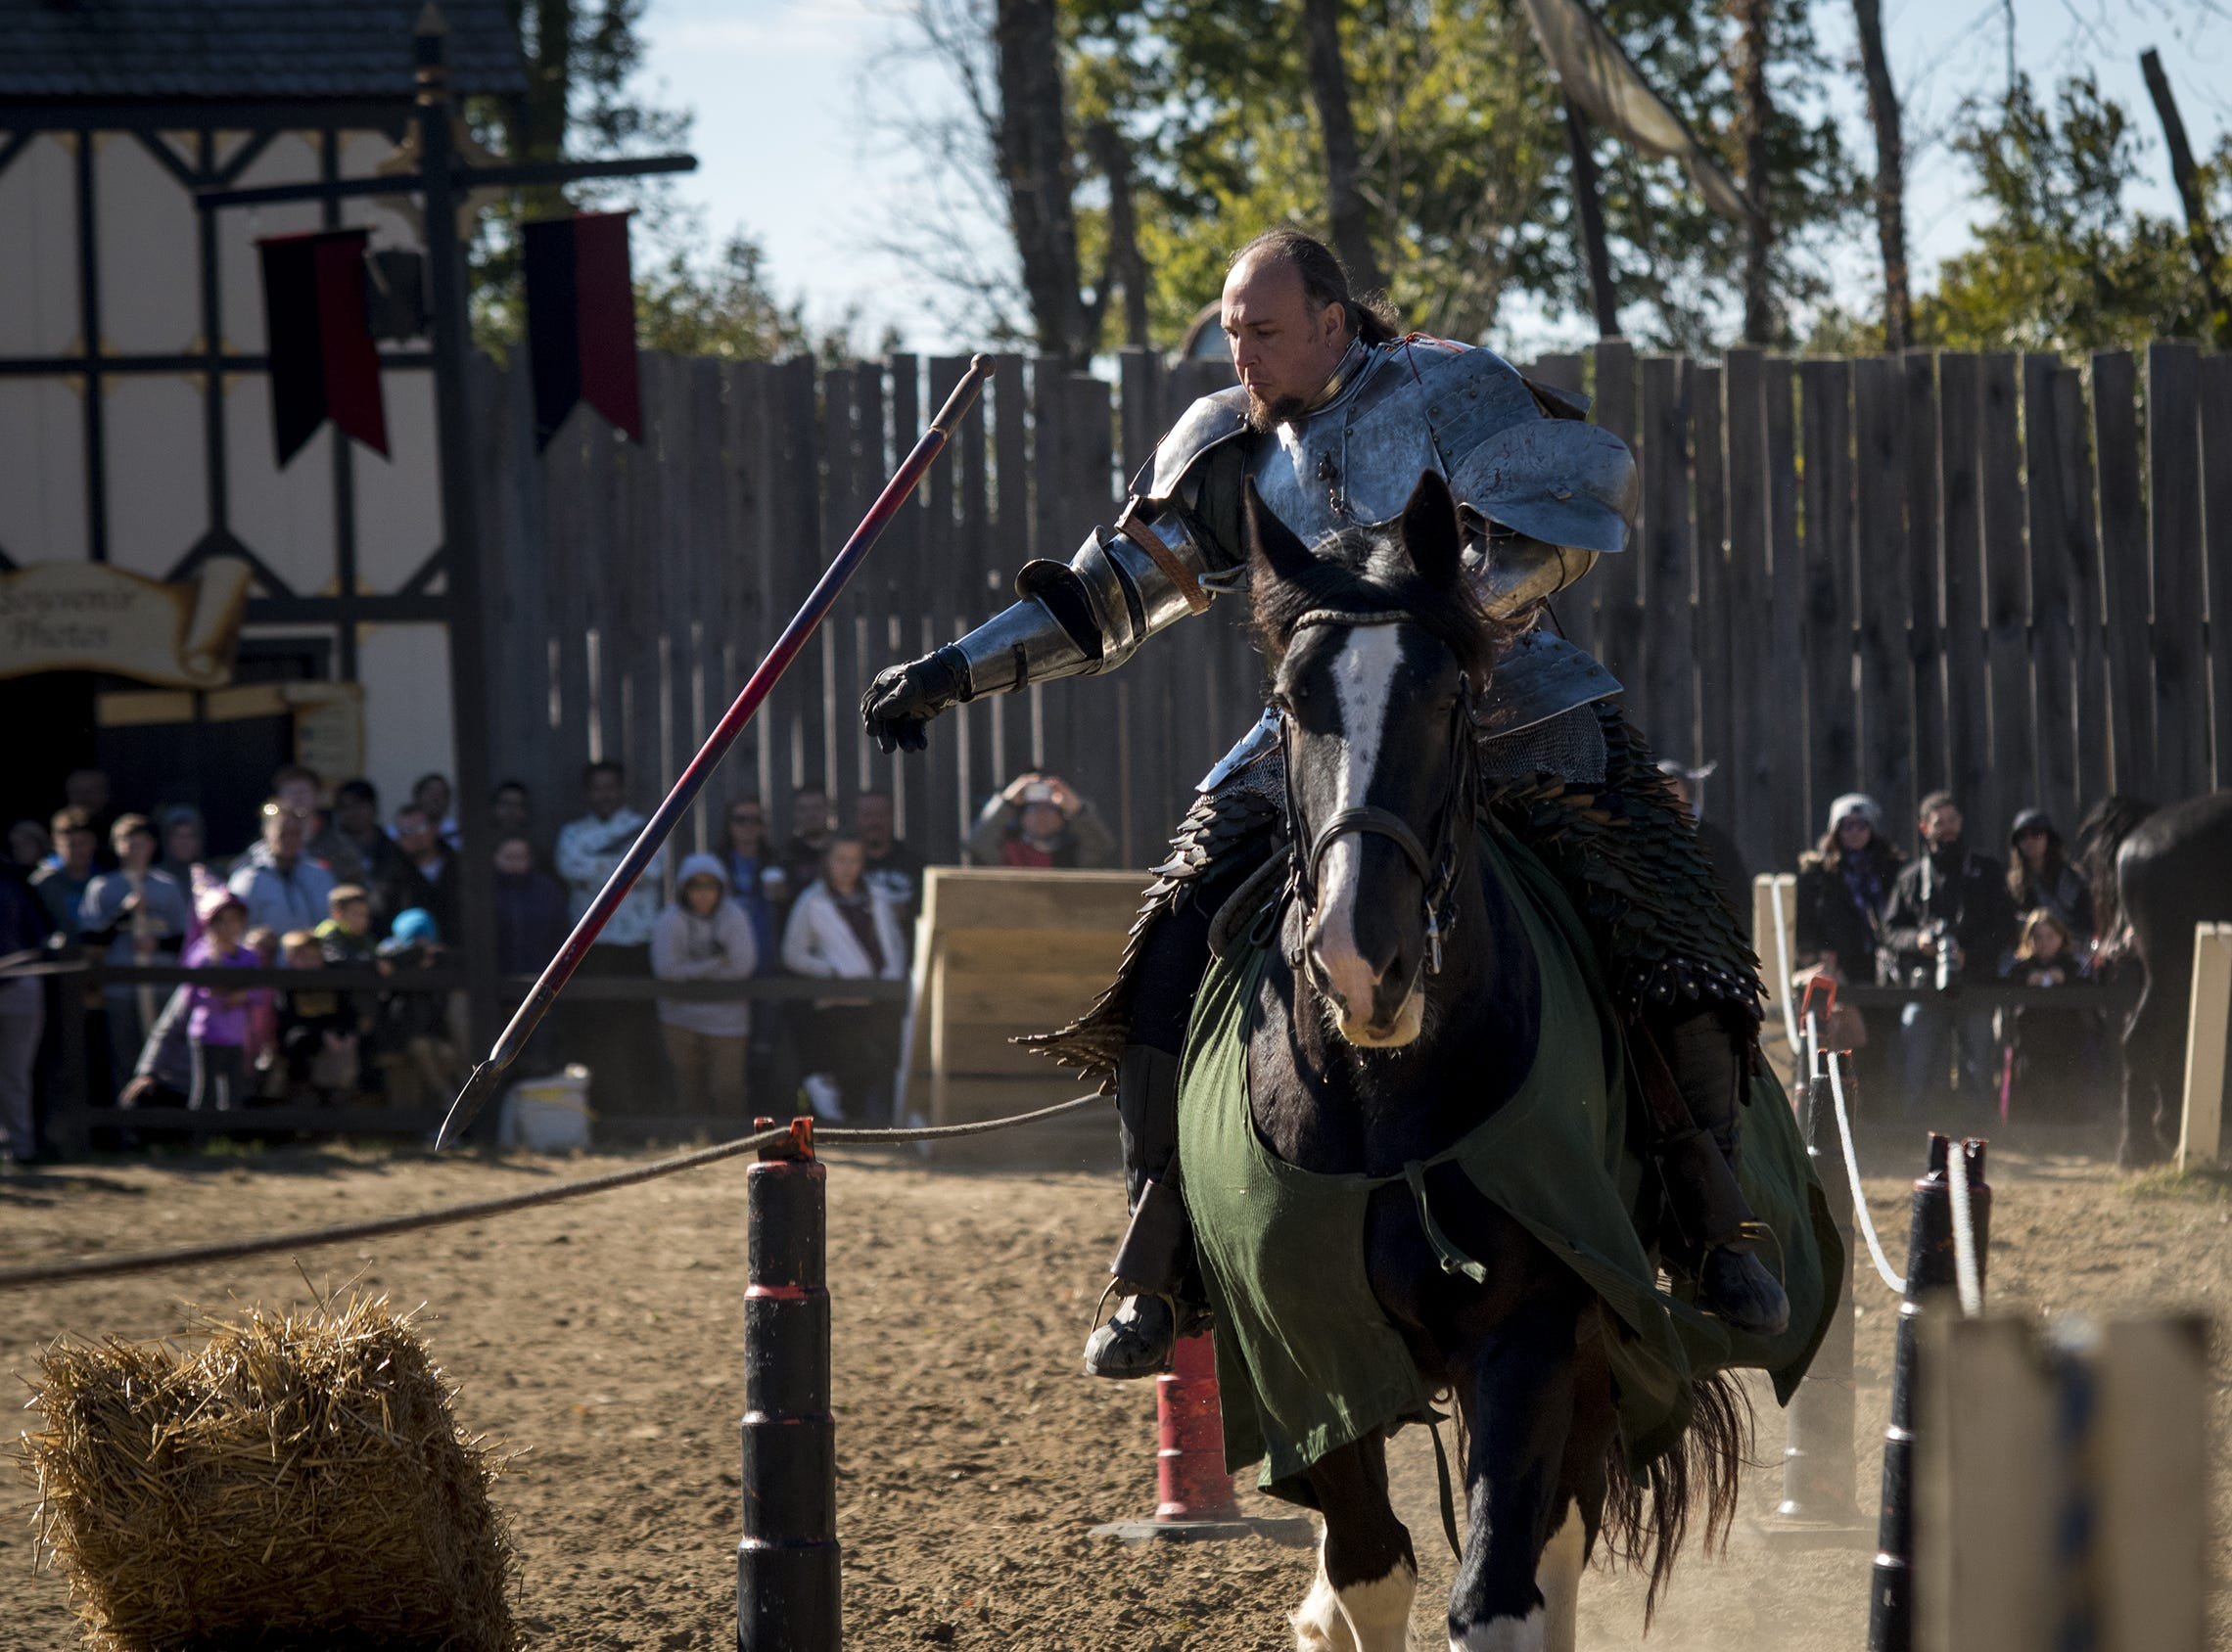 Sir Theodore throws a javelin at a target during the live jousting show at the Ohio Renaissance Festival Sunday, October 21, 2018 in Waynesville, Ohio.